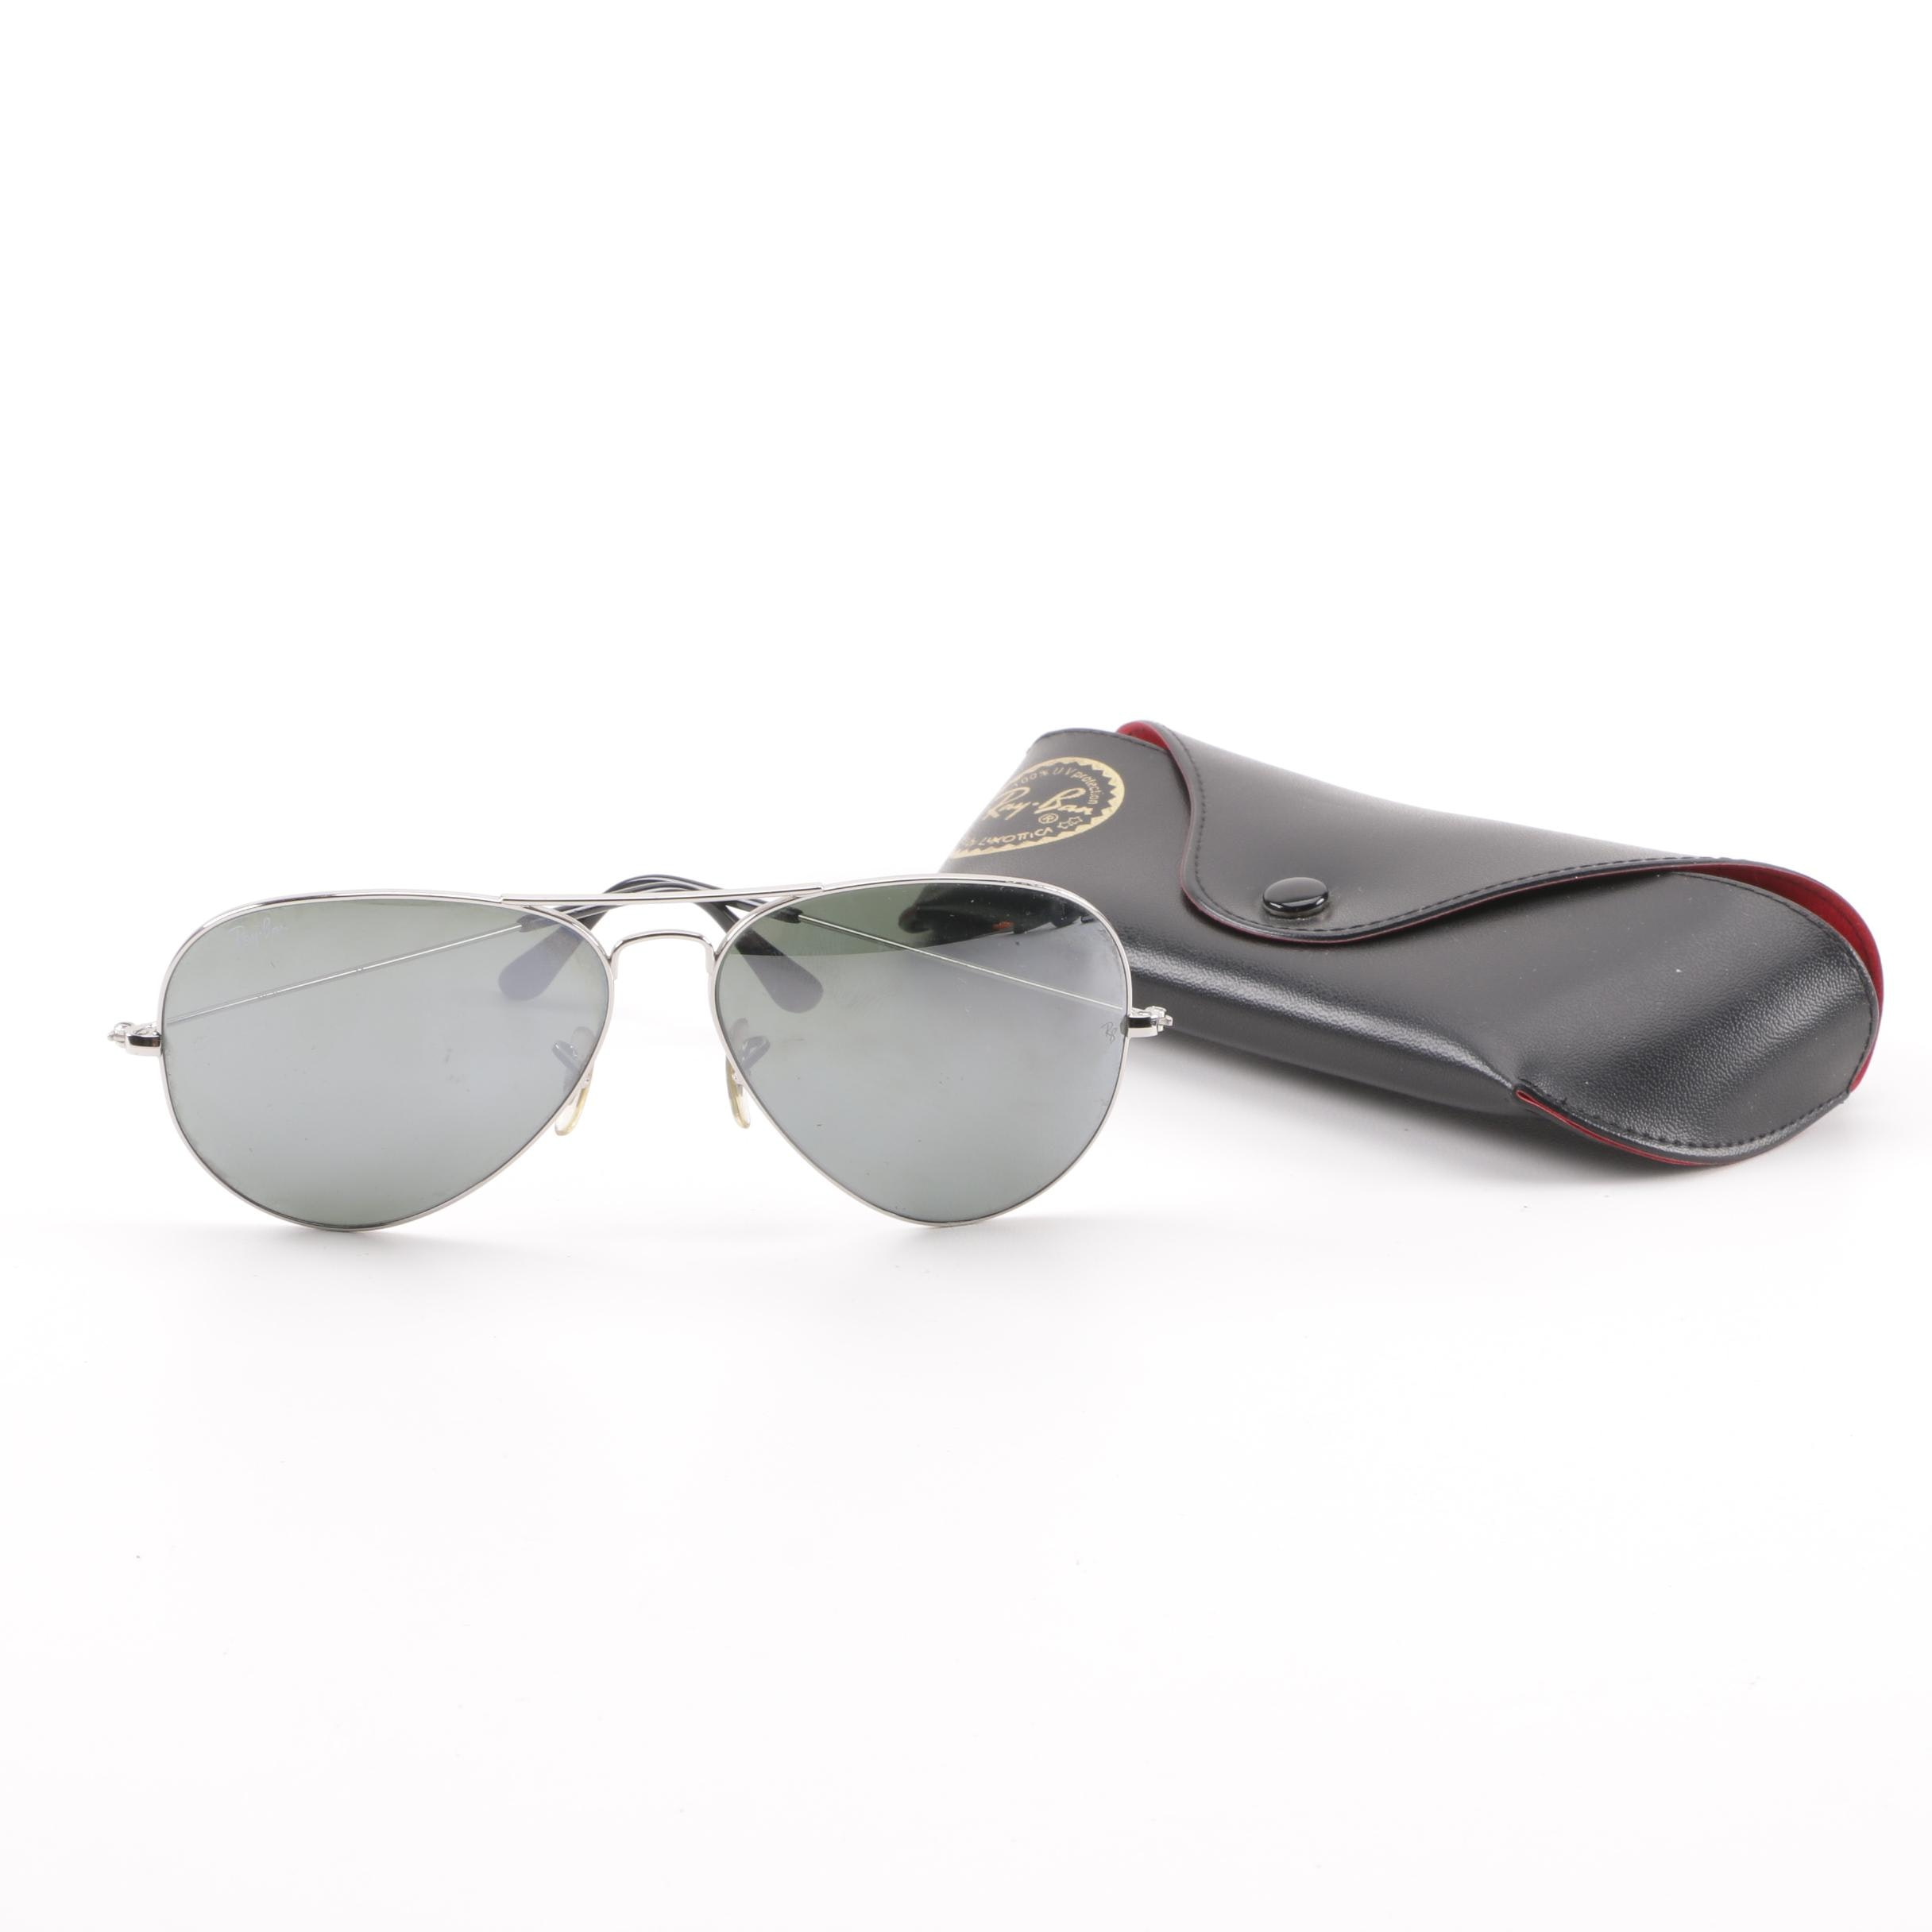 Ray-Ban RB 3025 Aviator L Mirrored Sunglasses with Case